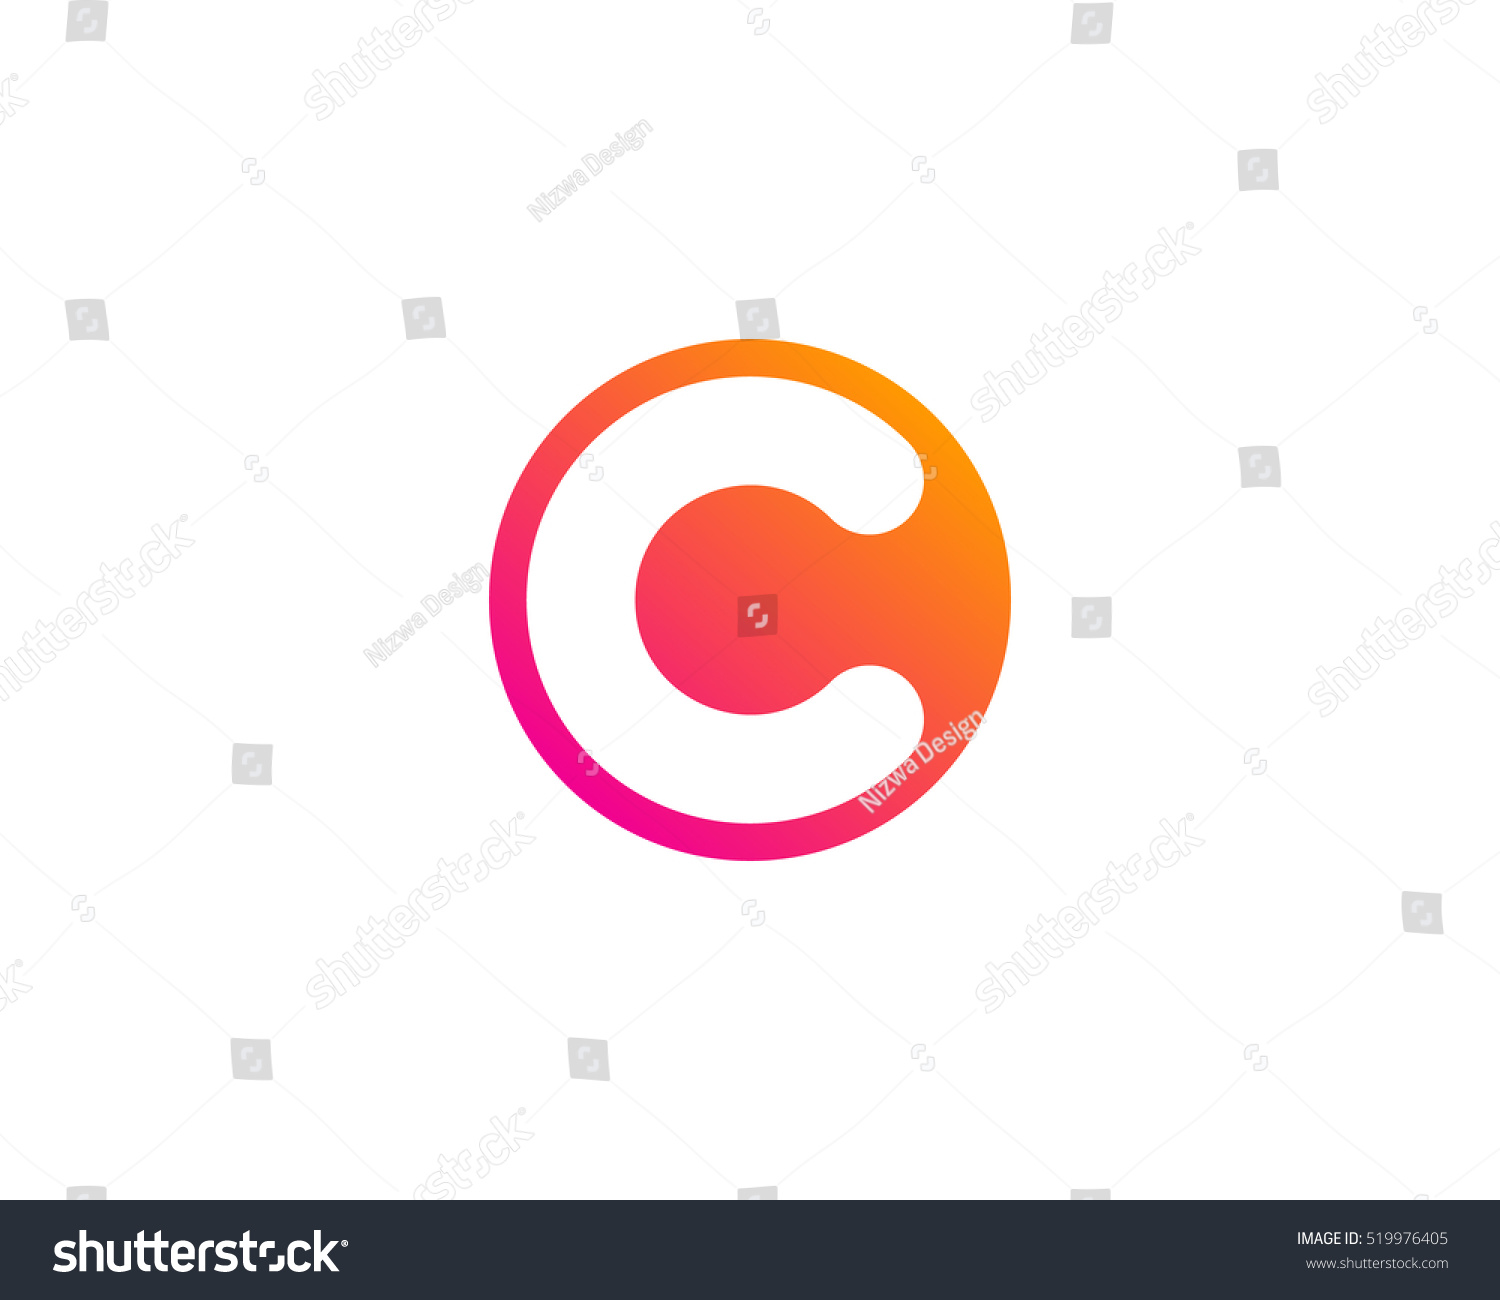 Initial letter c circle negative space stock vector 519976405 initial letter c circle negative space logo design template biocorpaavc Images